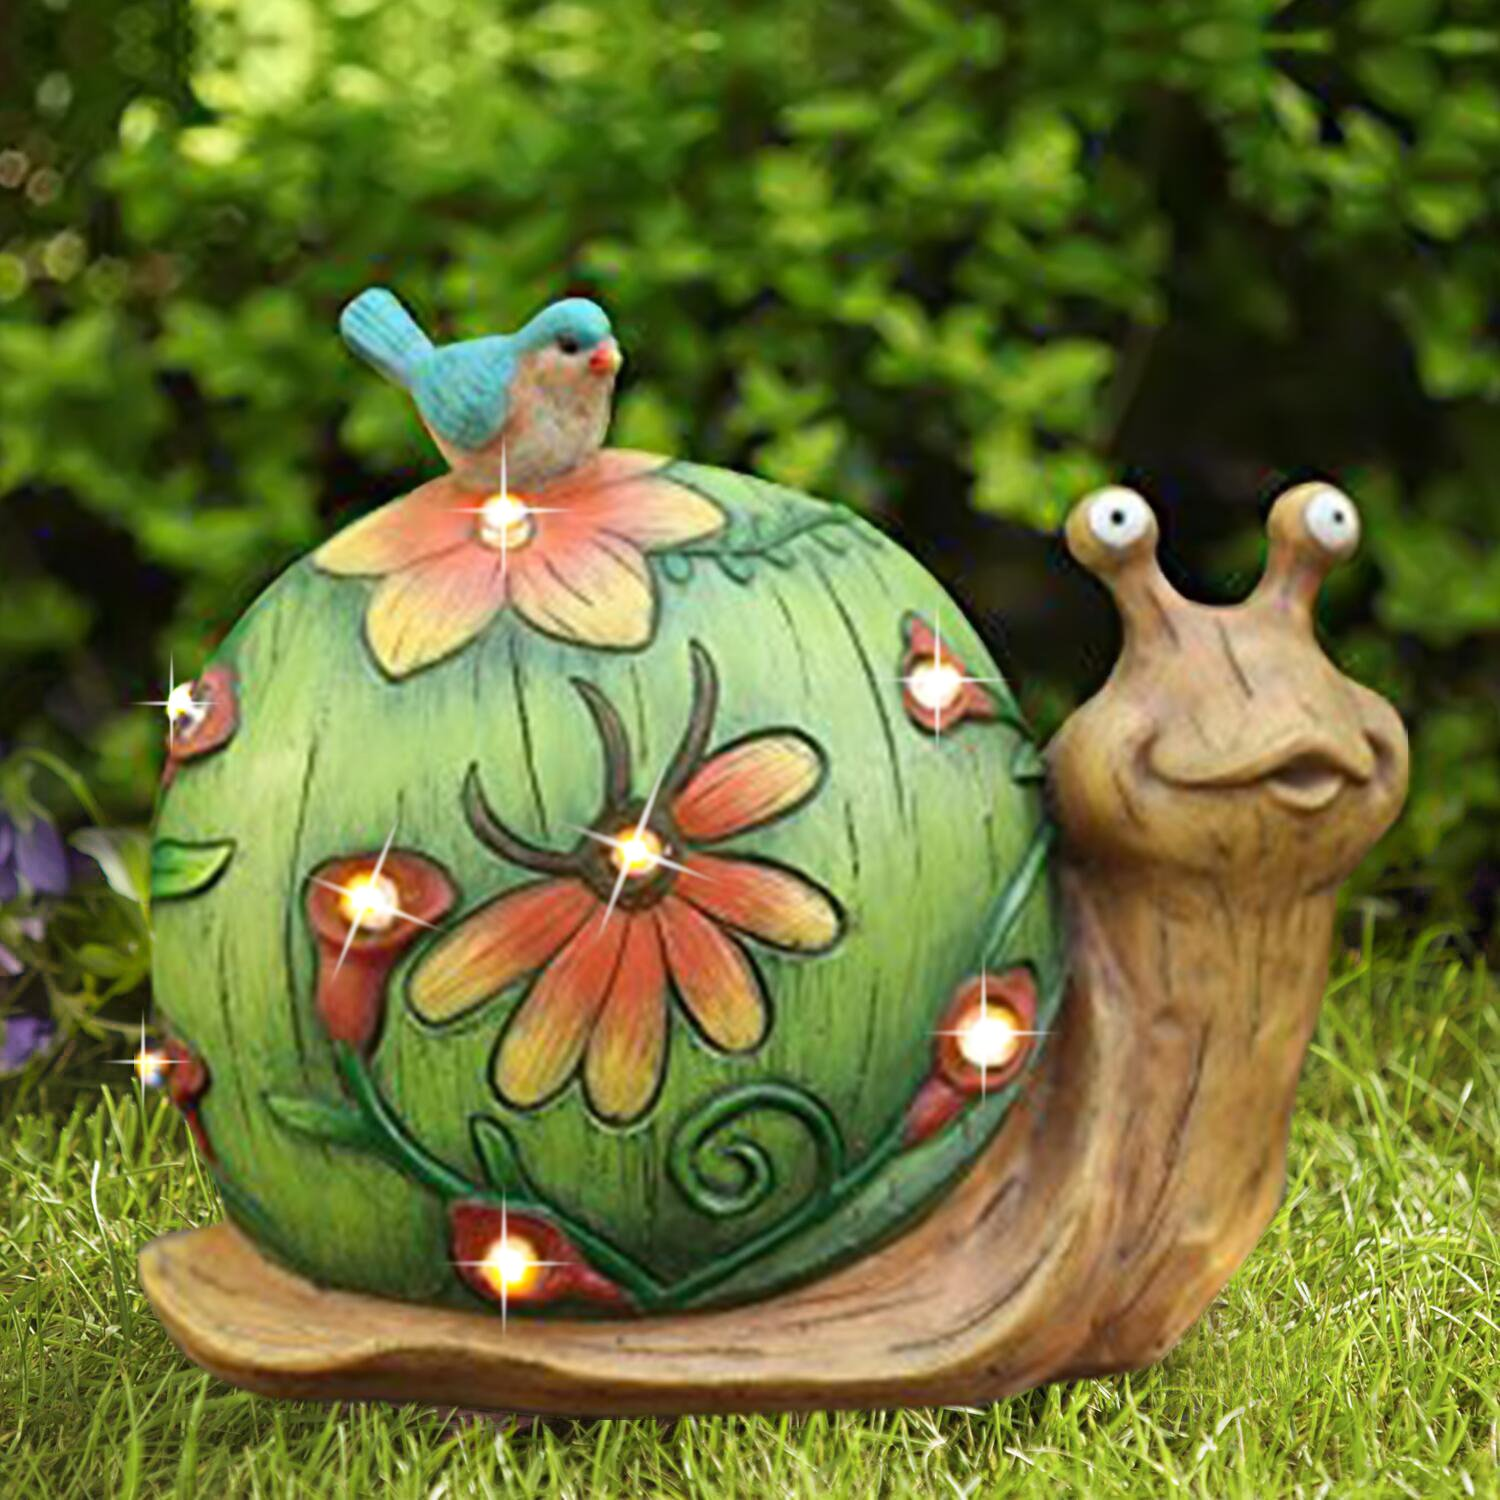 Garden Statue Snail Figurine with Solar Powered Outdoor Lights for Indoor Garden Yard Decorations, 10''x8.5'', Housewarming Gift